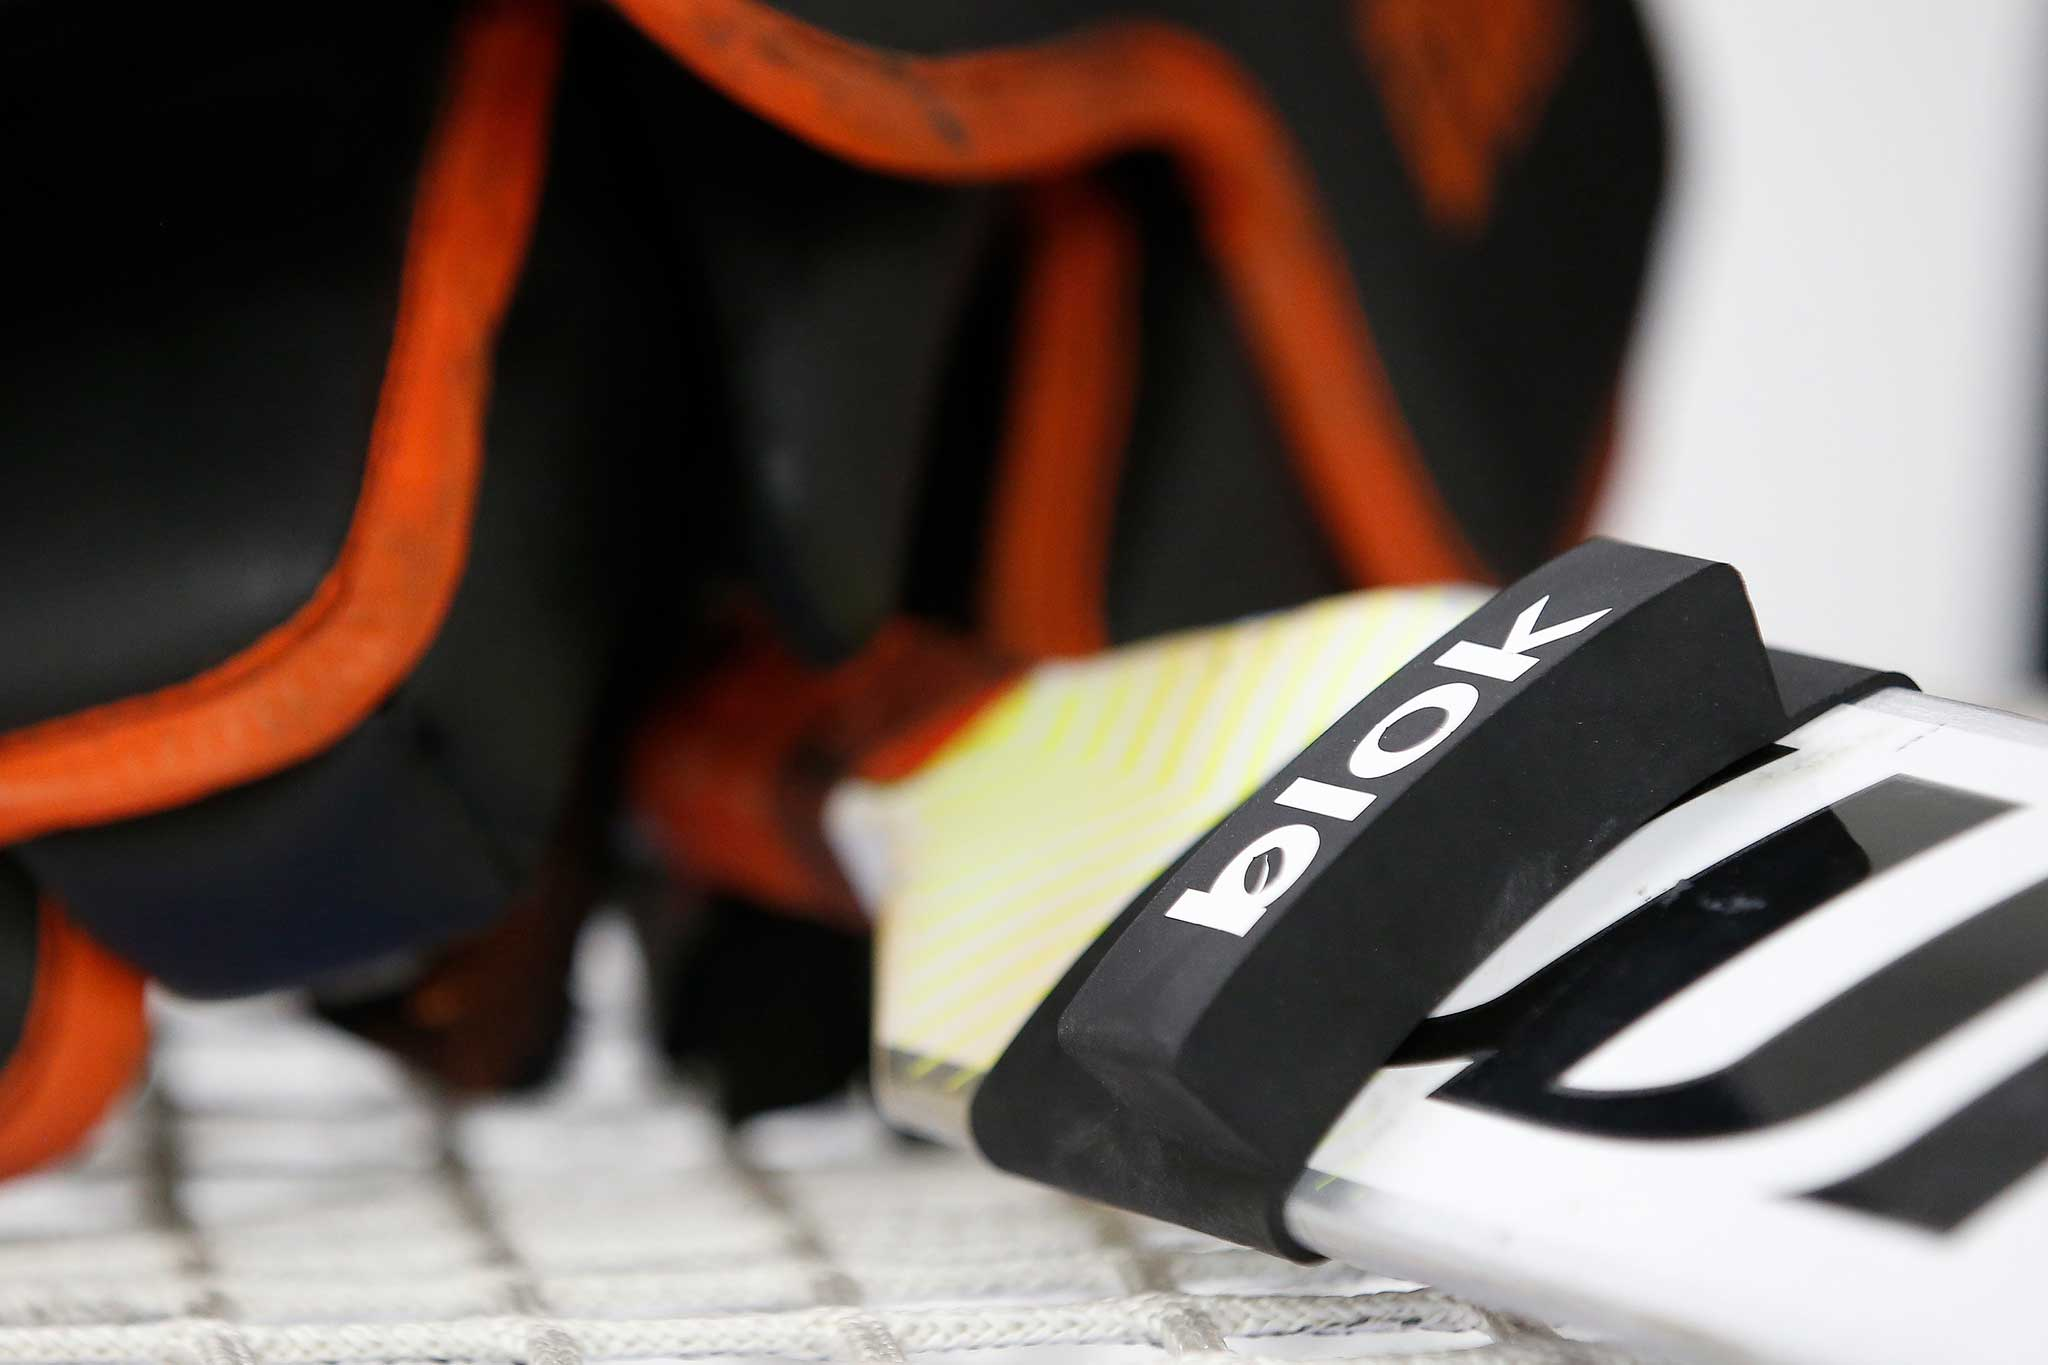 The Blok is designed to protect goaltenders' fingers. (John Woods / Winnipeg Free Press)